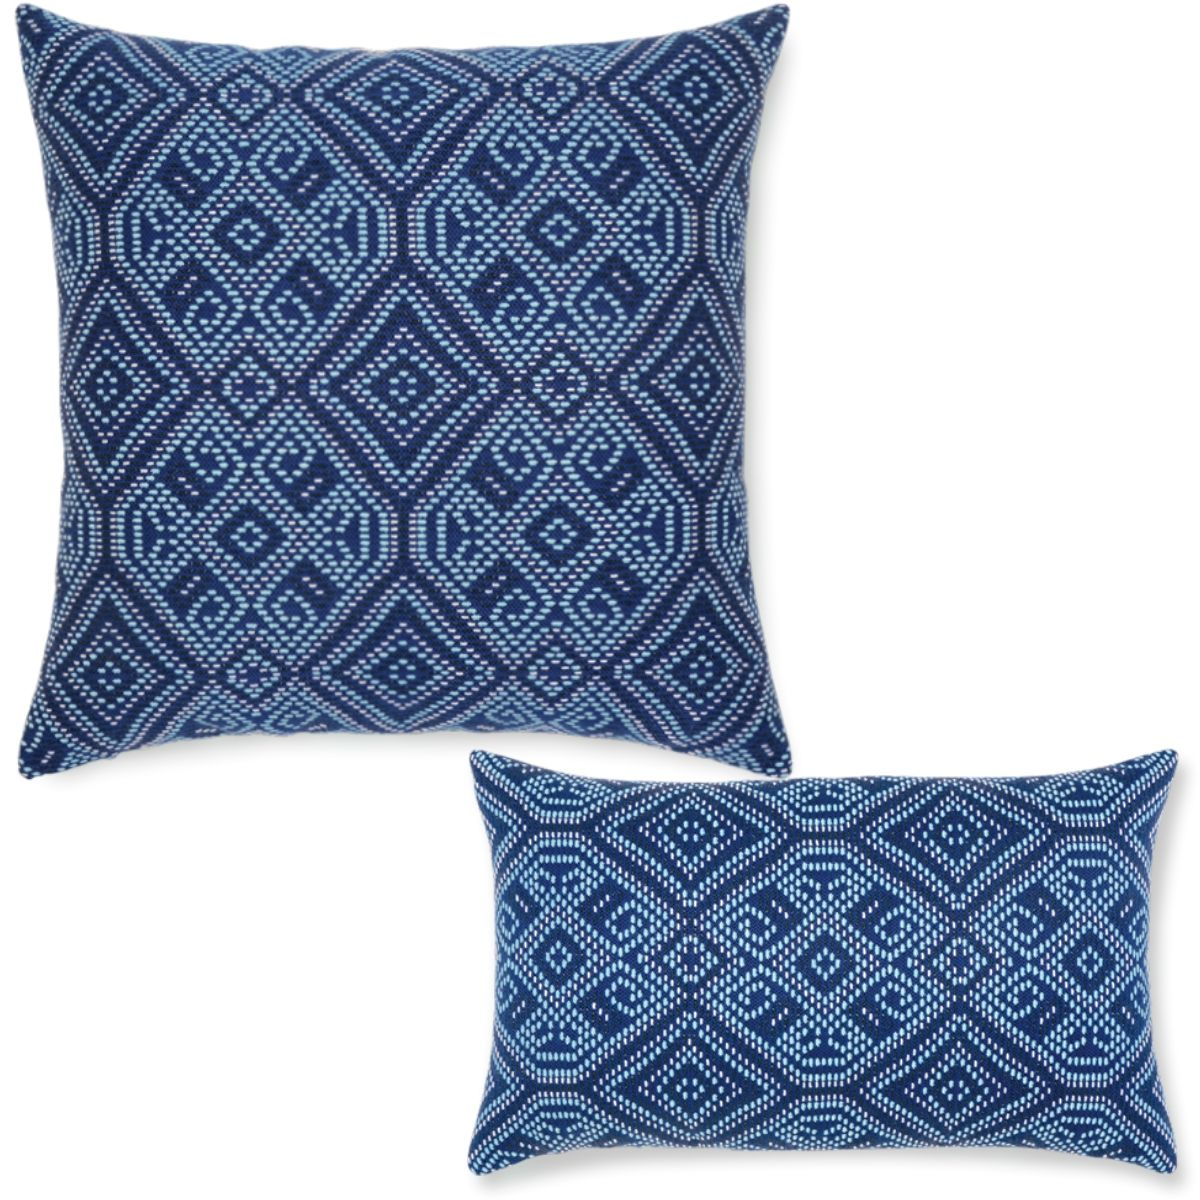 elaine-smith-midnight-tile-pillow-collection-blue